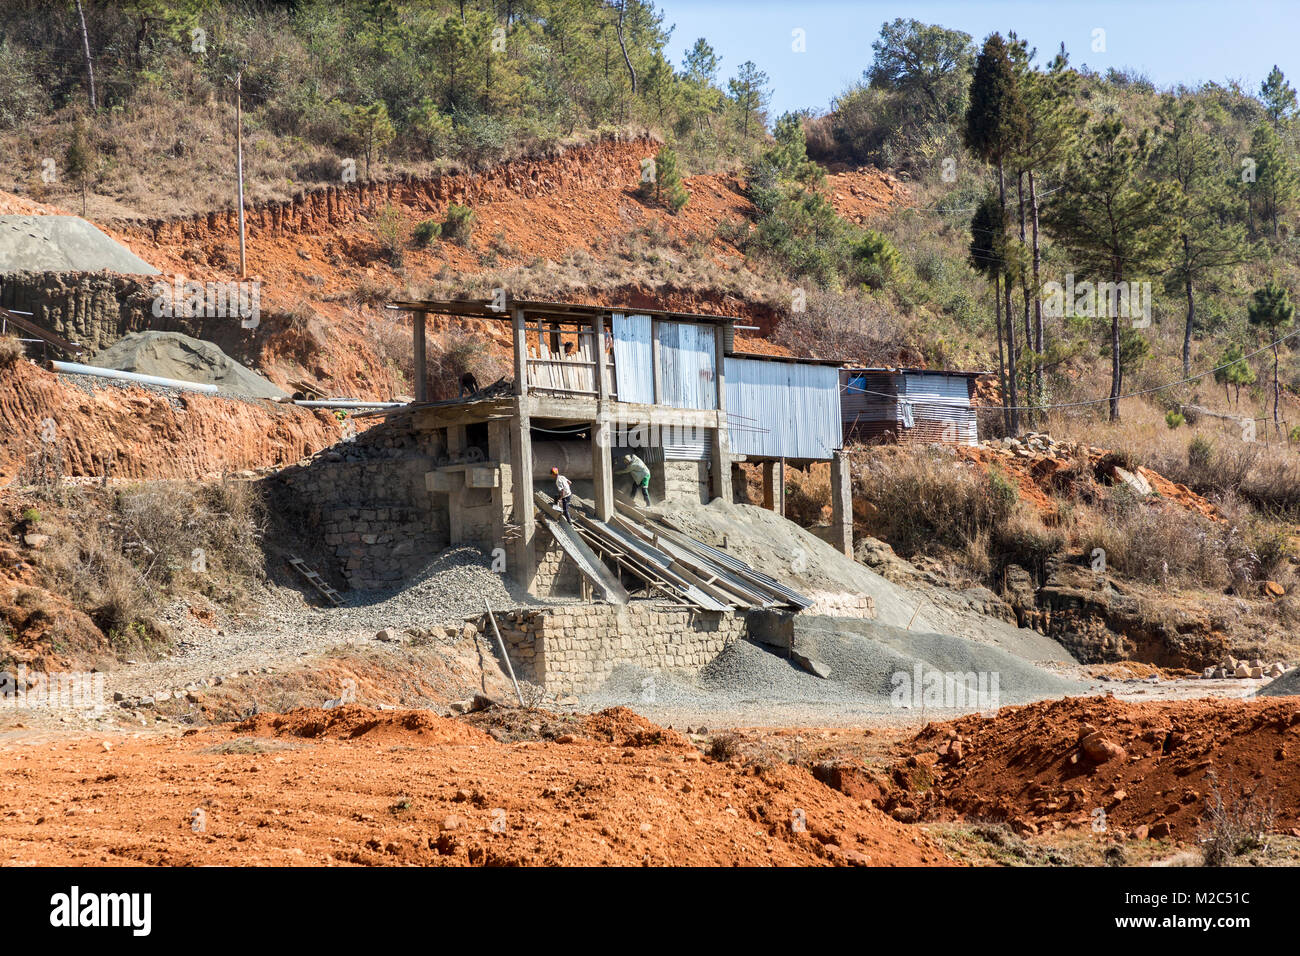 Men working a stone crusher to create gravel, on way from Mawsynram to Shillong, Meghalaya, India - Stock Image